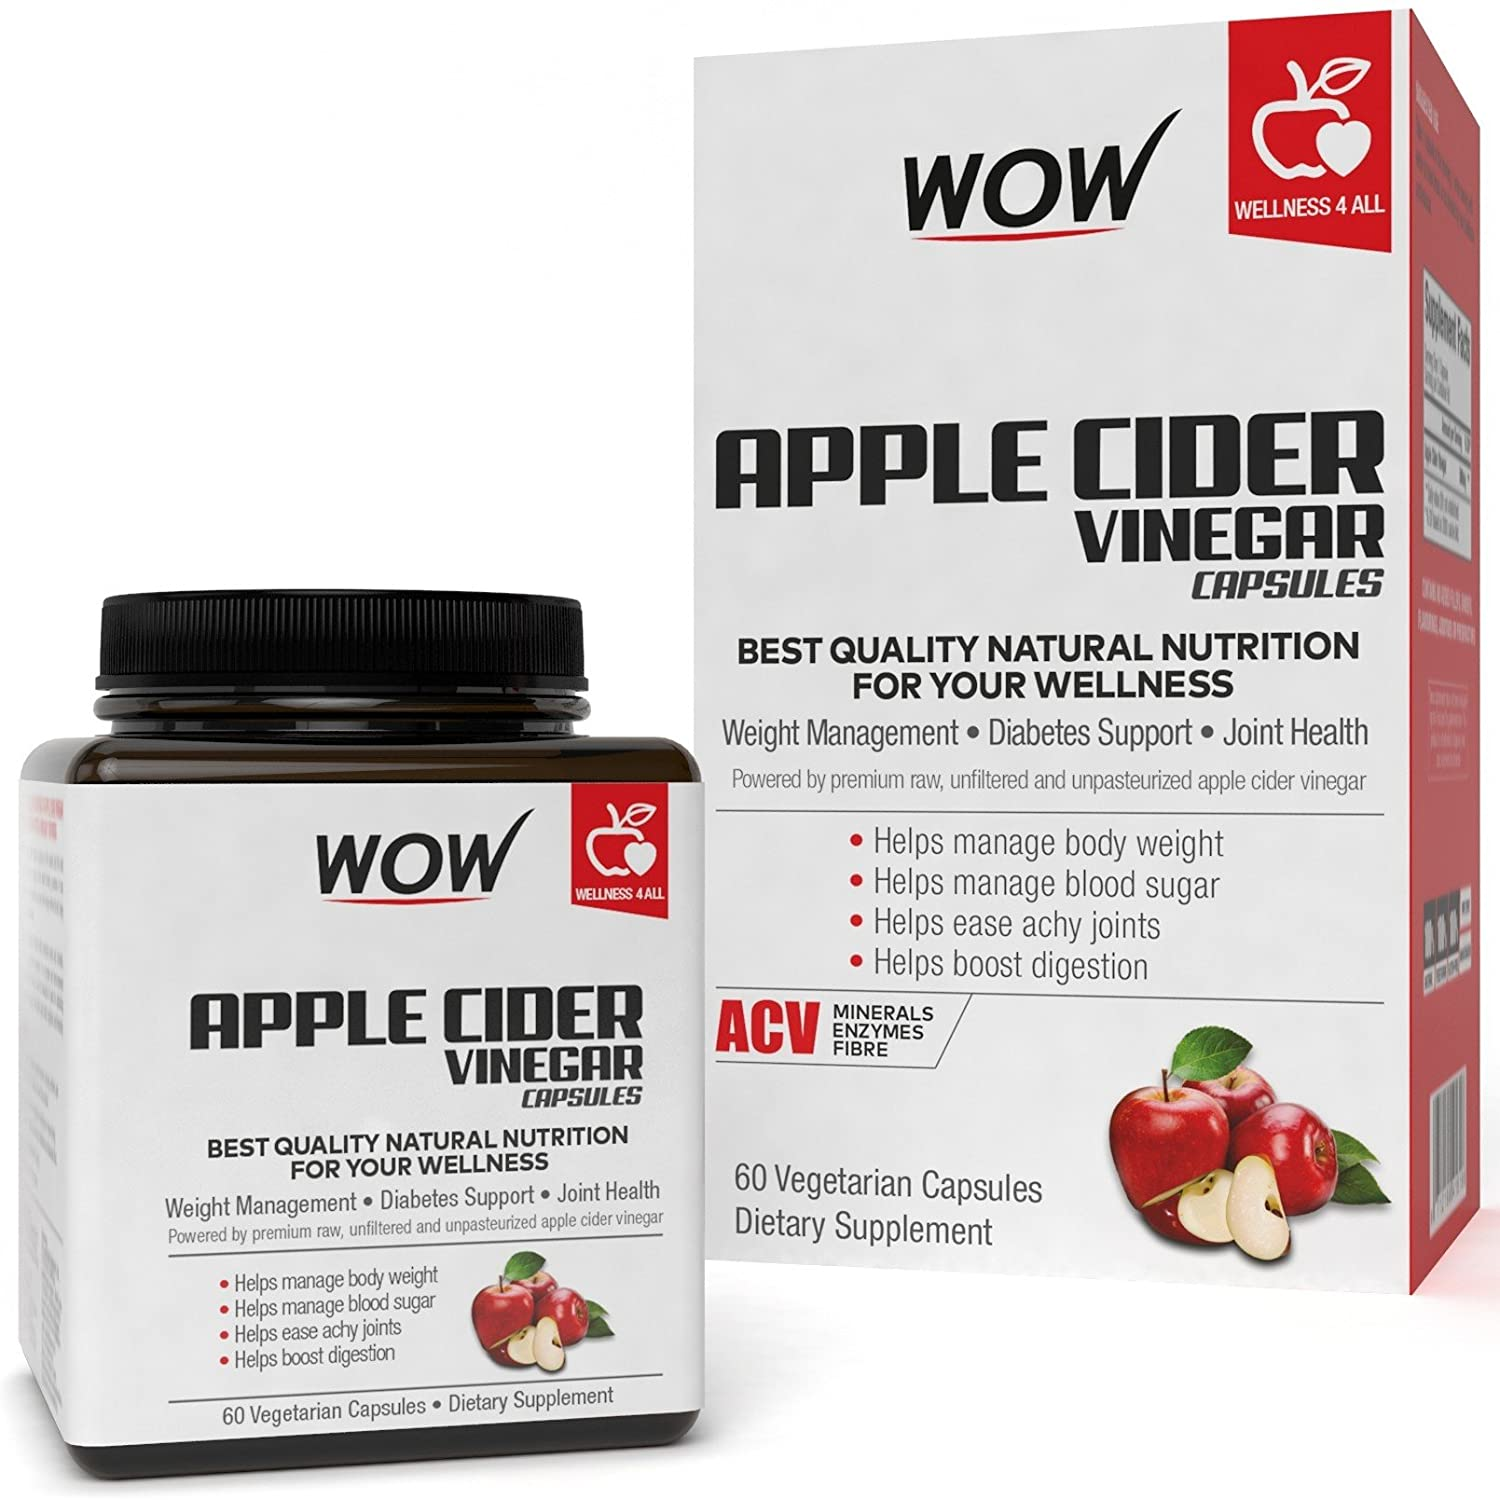 WOW Raw Apple Cider Vinegar 500mg - 60 Vegetarian Capsules